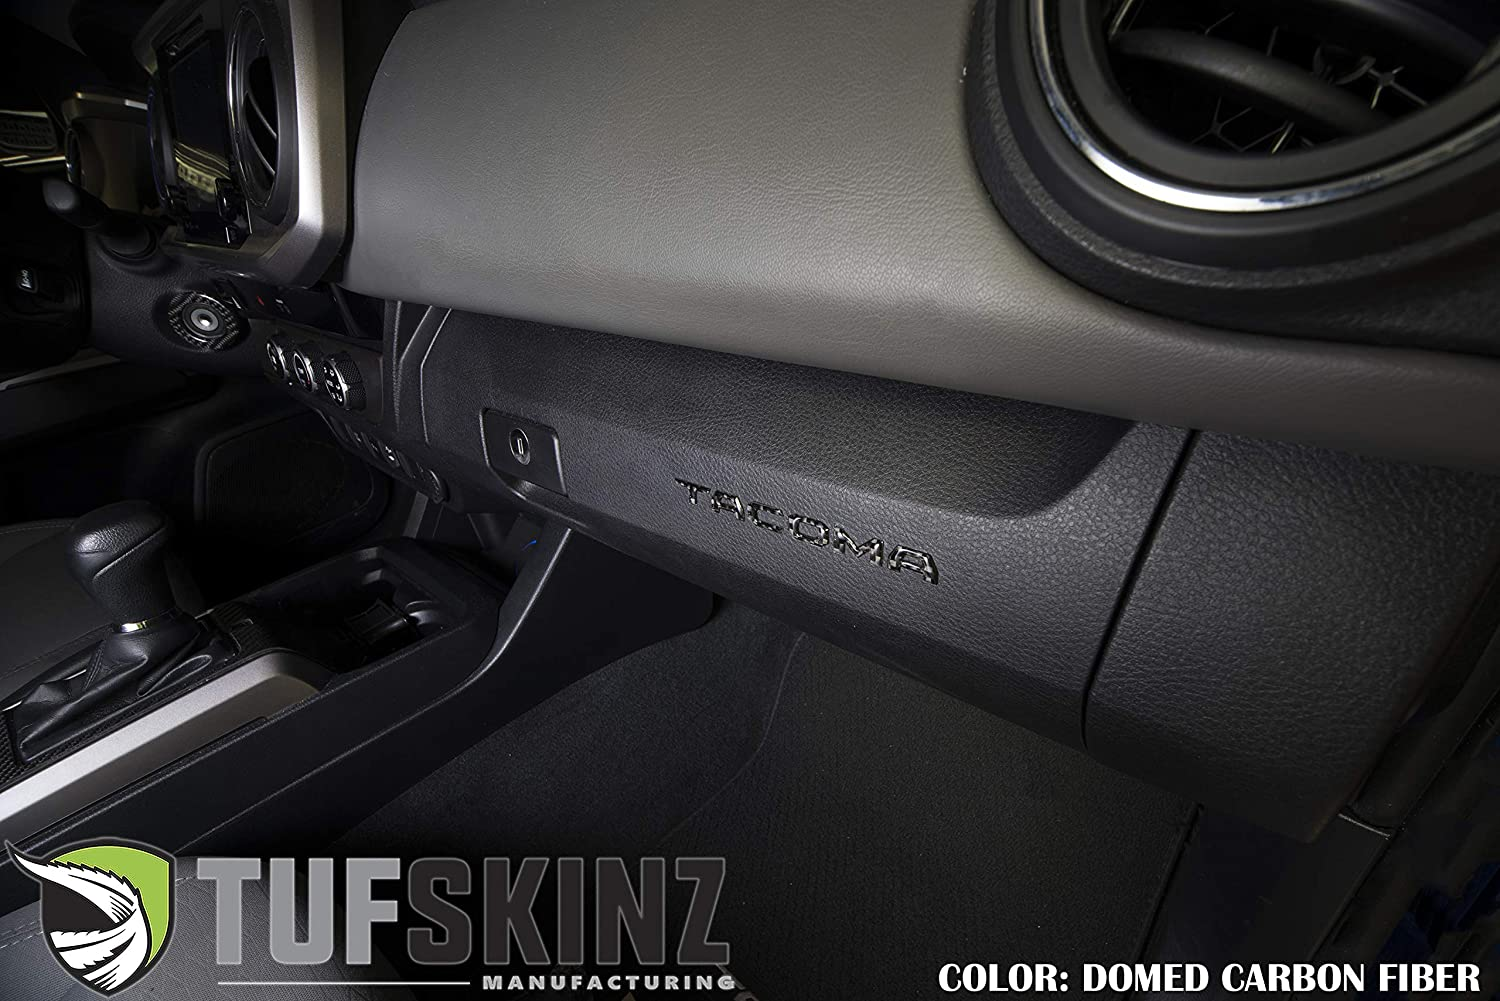 Glove Box Inserts - 2016-up Tacoma Tan Quicksand 6 Piece Kit TufSkinz